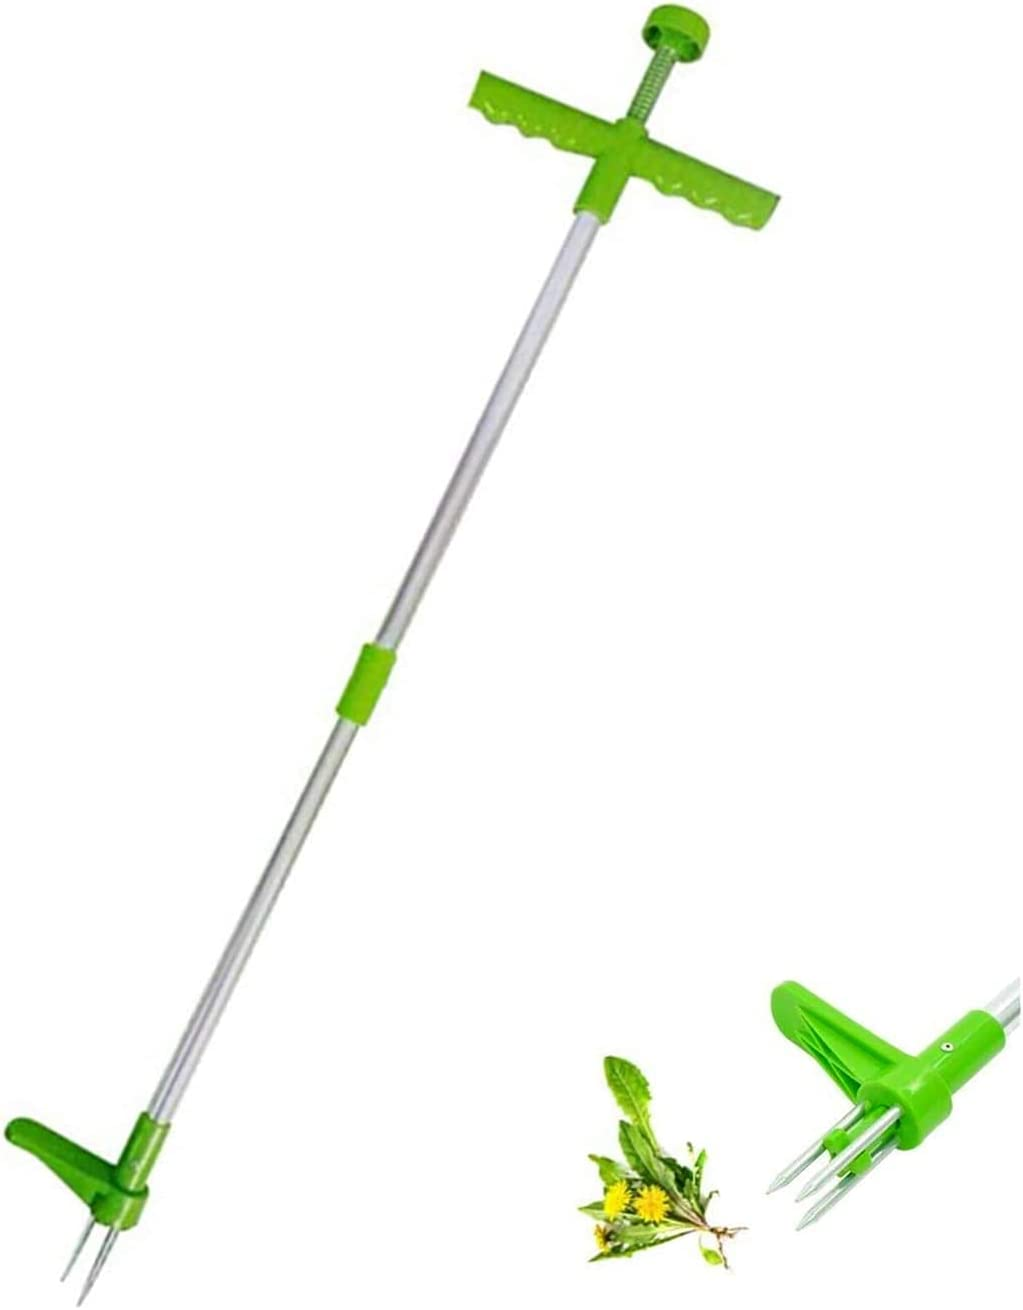 MBVBN Weed Puller, Stand Up Weeder Hand Tool, Long Handle Garden Weeding Tool with 3 Claws, Hand Weed Hound Weed Puller for Dandelion, Standup Weed Root Pulling Tool and Picker, Grabber 1 Pack